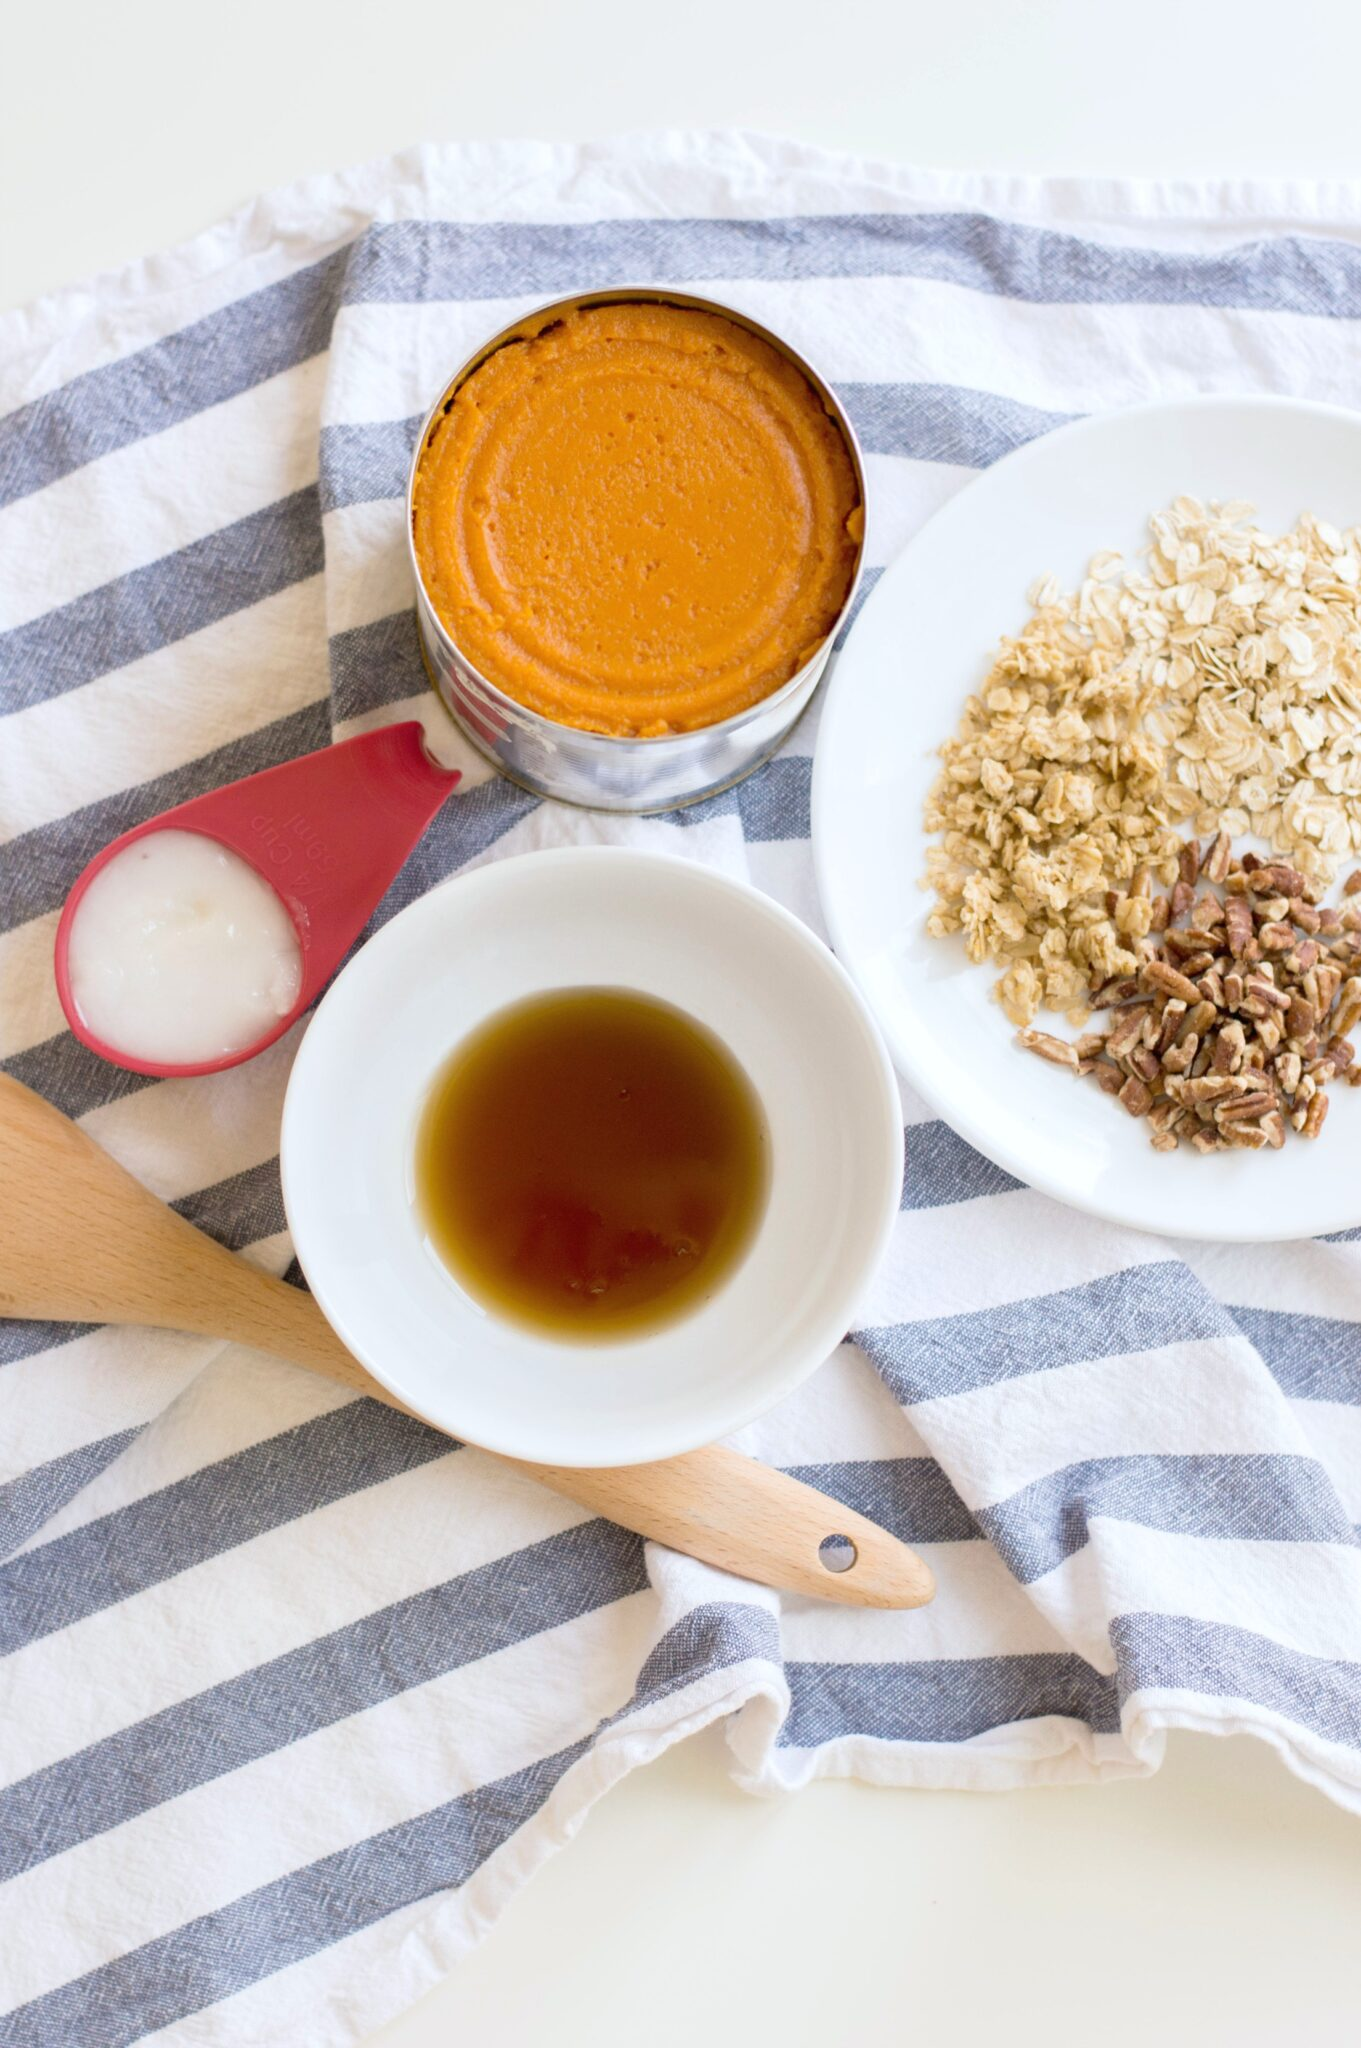 The ingredients for the pumpkin maple pecan granola.